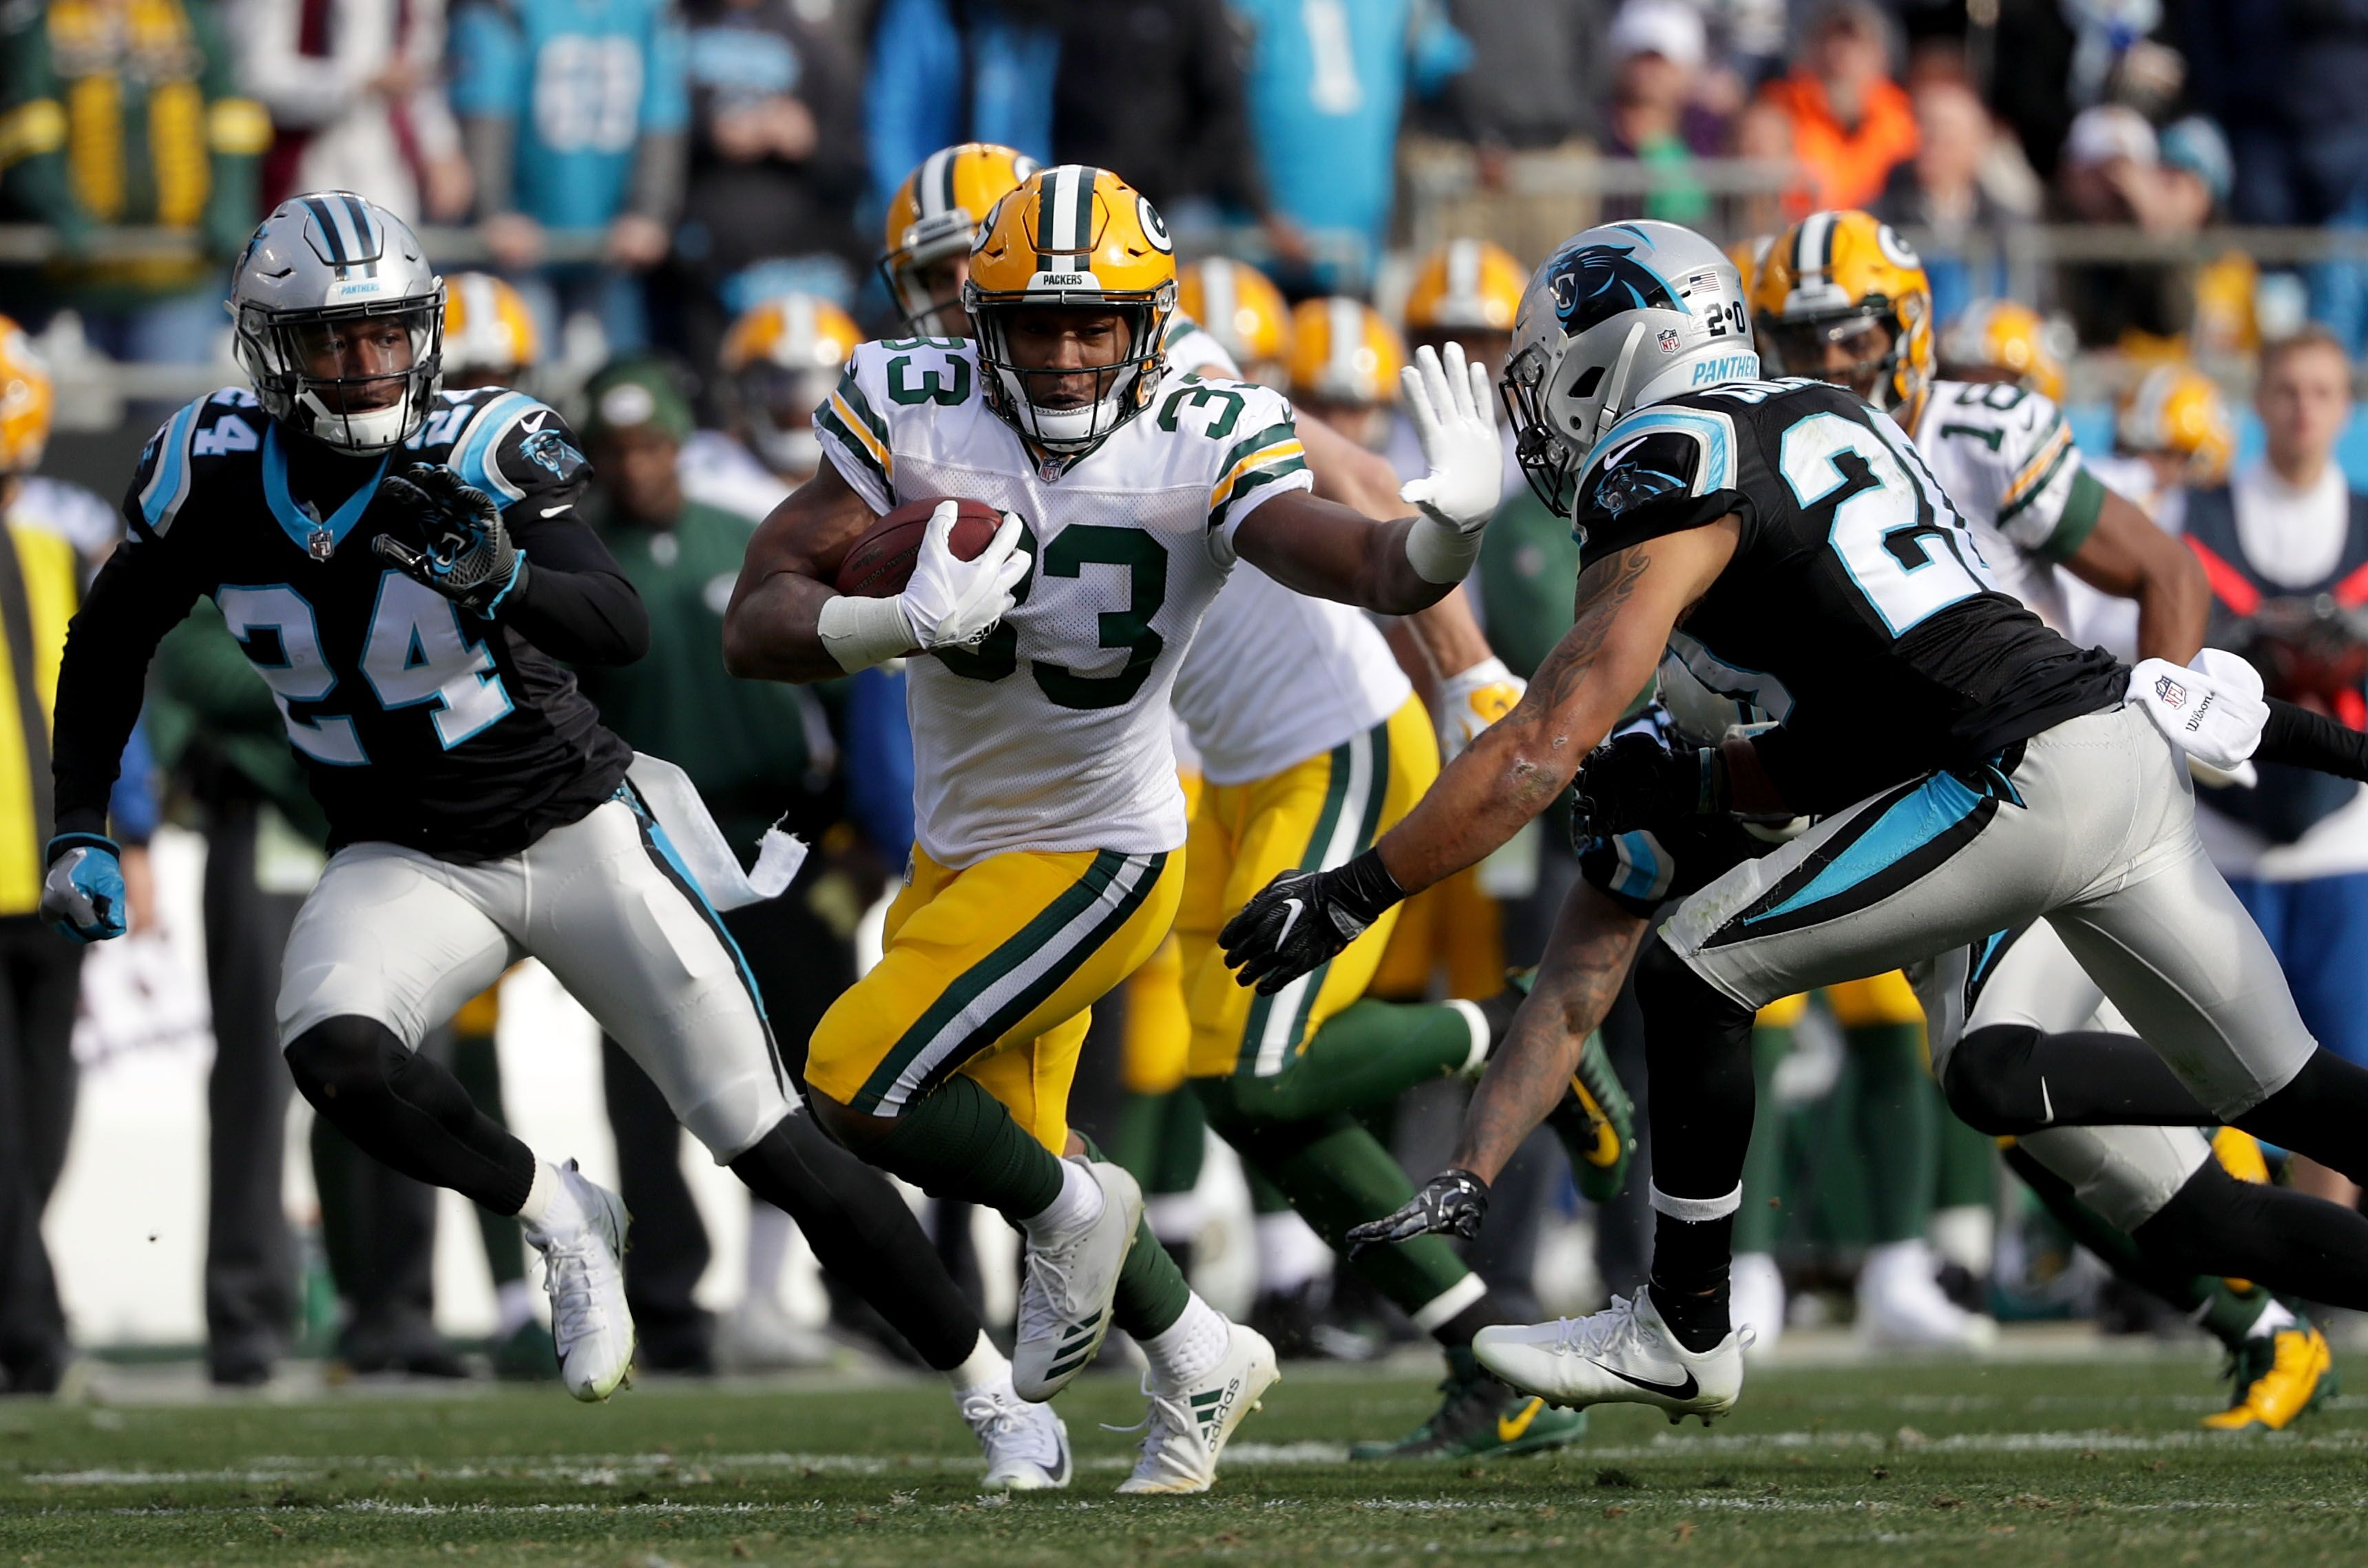 894285170-green-bay-packers-v-carolina-panthers.jpg